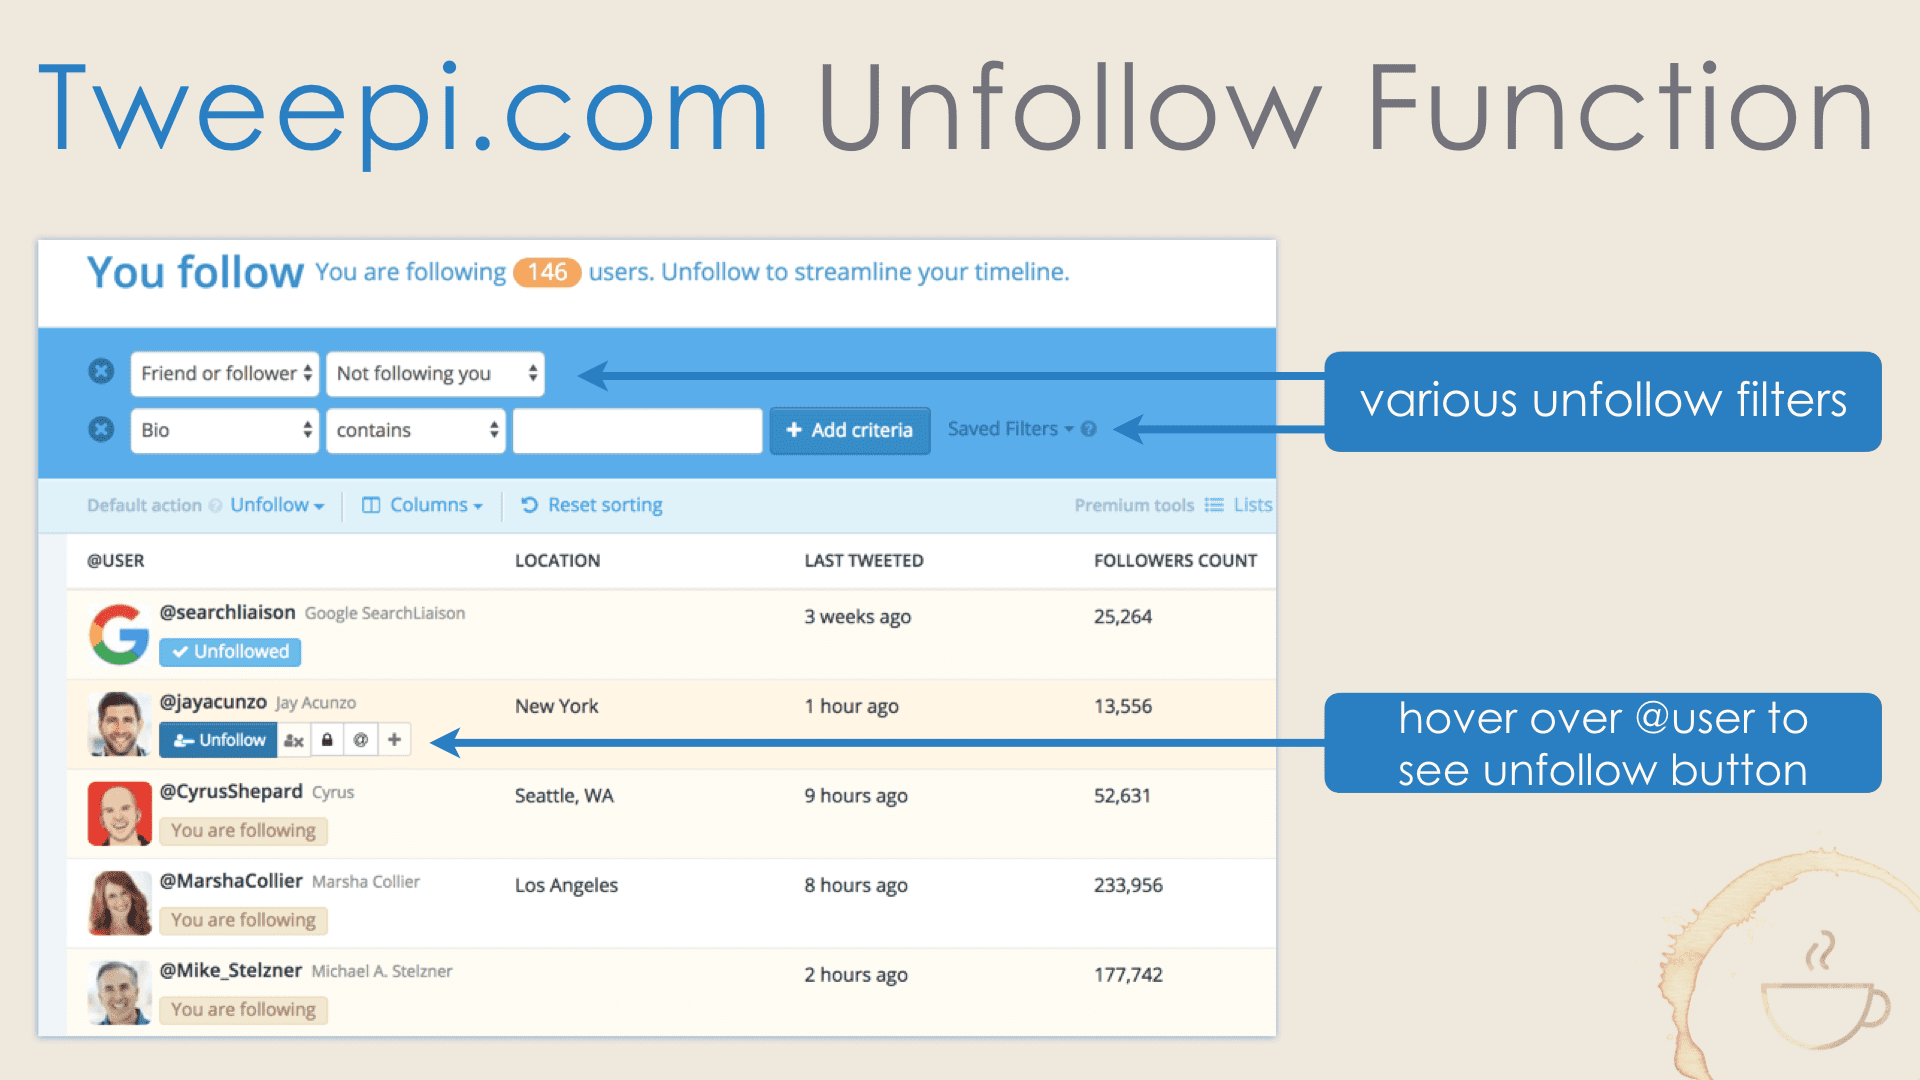 How to unfollow Twitter users with Tweepi.